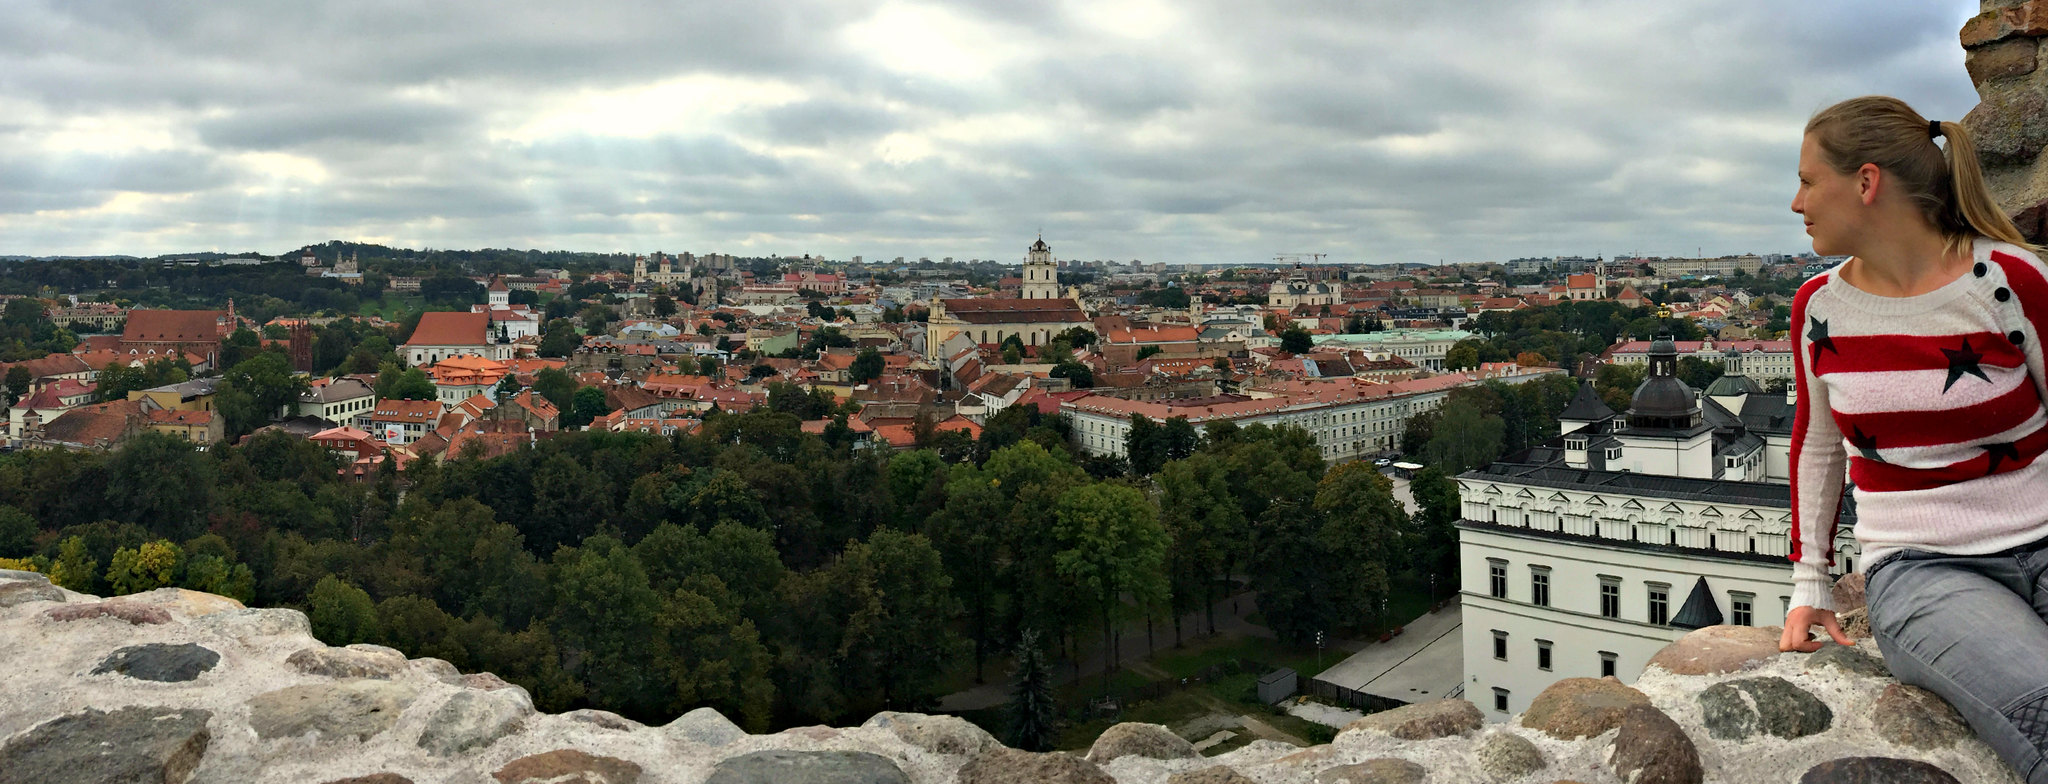 City breaks in Europe; the view over Vilnius